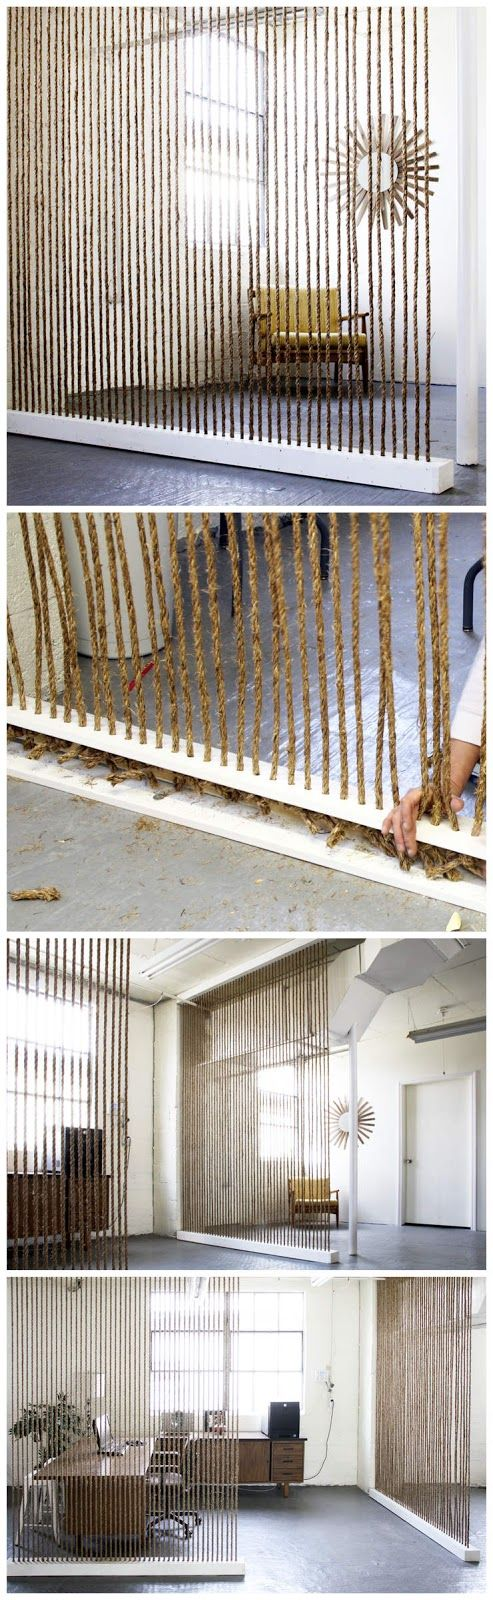 DIY Rope Wall. Awesome idea for an office//